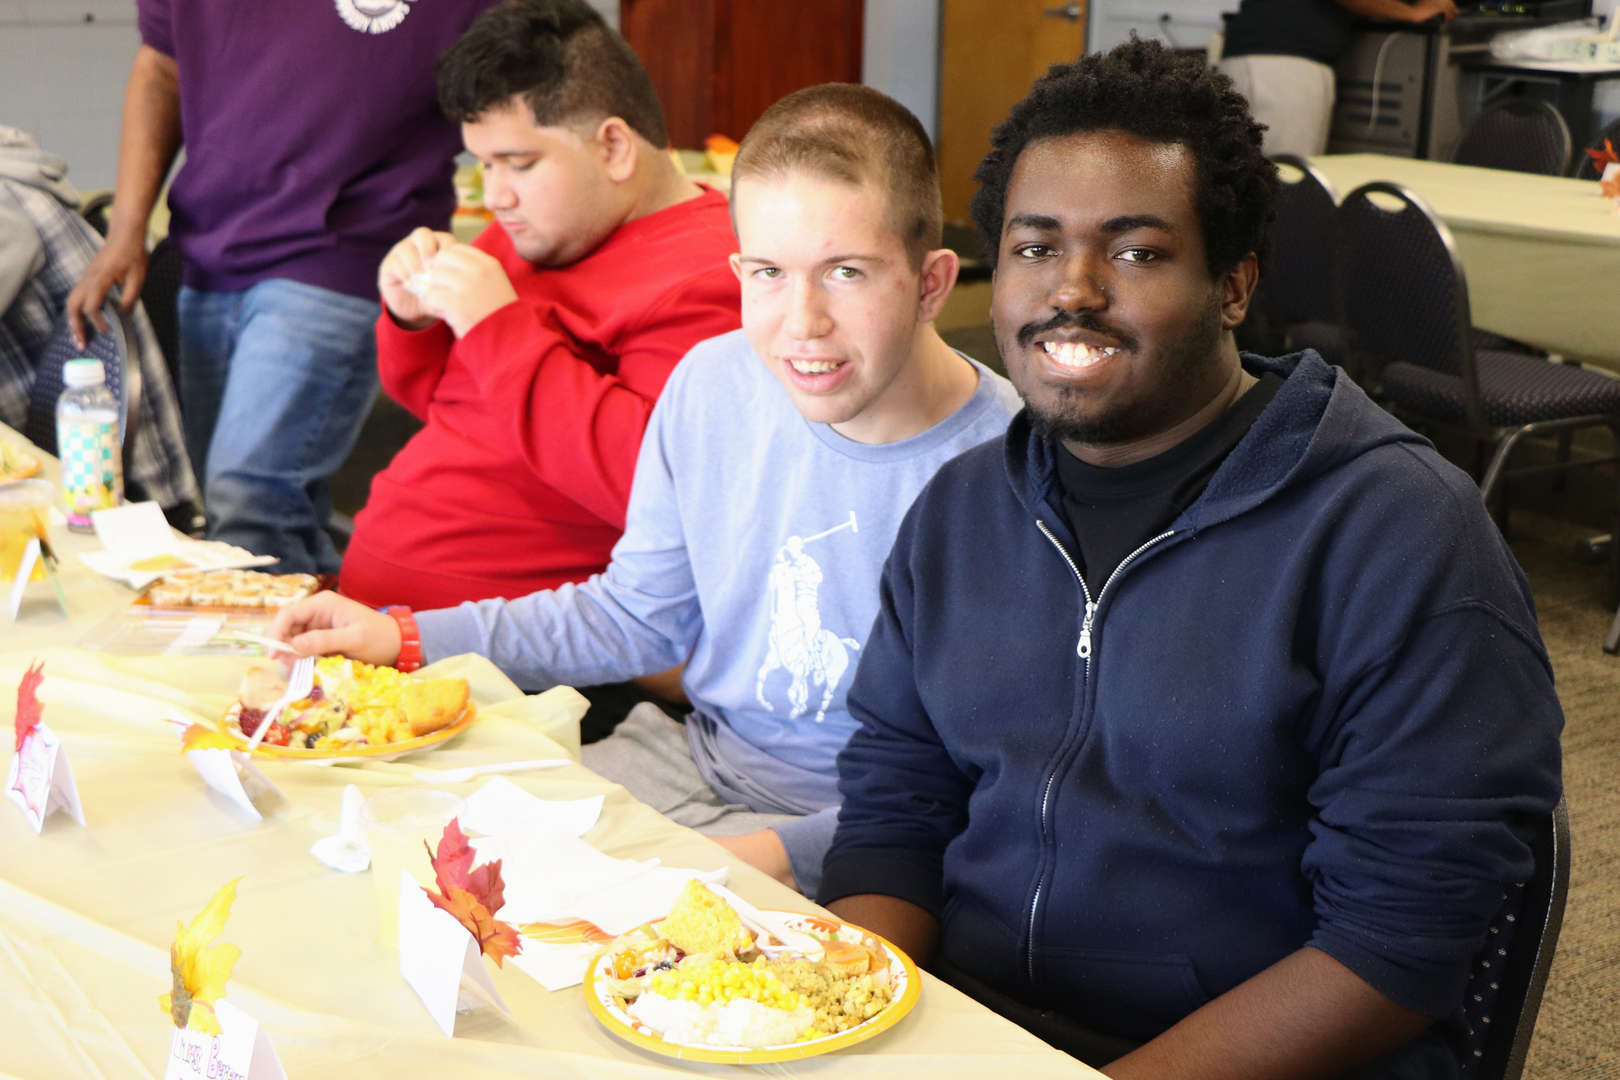 friends smile during Thanksgiving luncheon